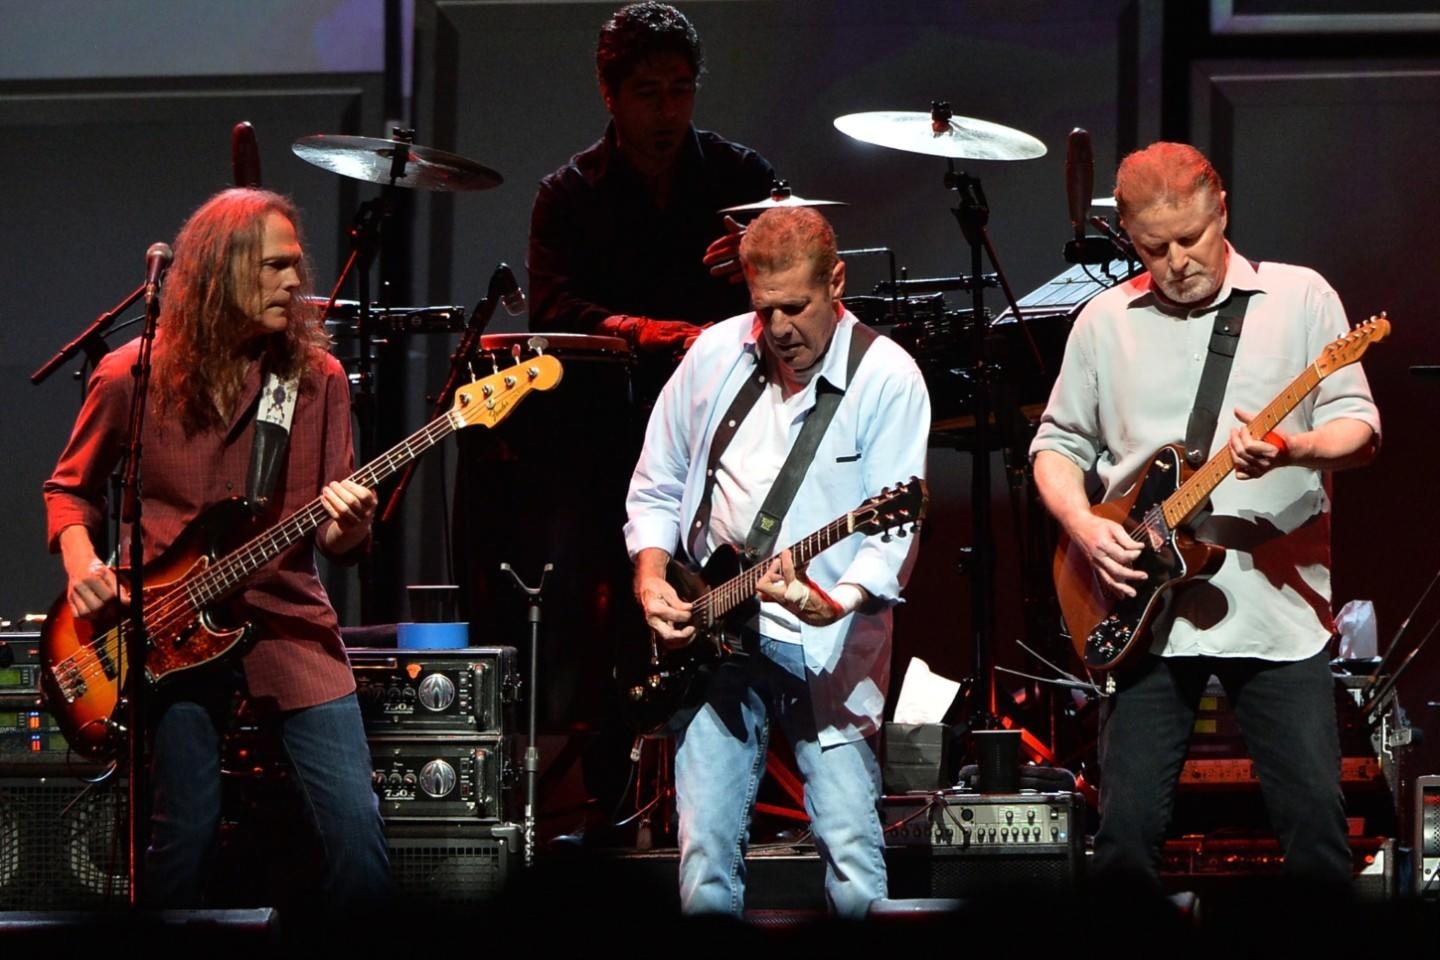 Eagles Band Tour 2020 The Eagles Tickets | The Eagles Tour Dates 2020 and Concert